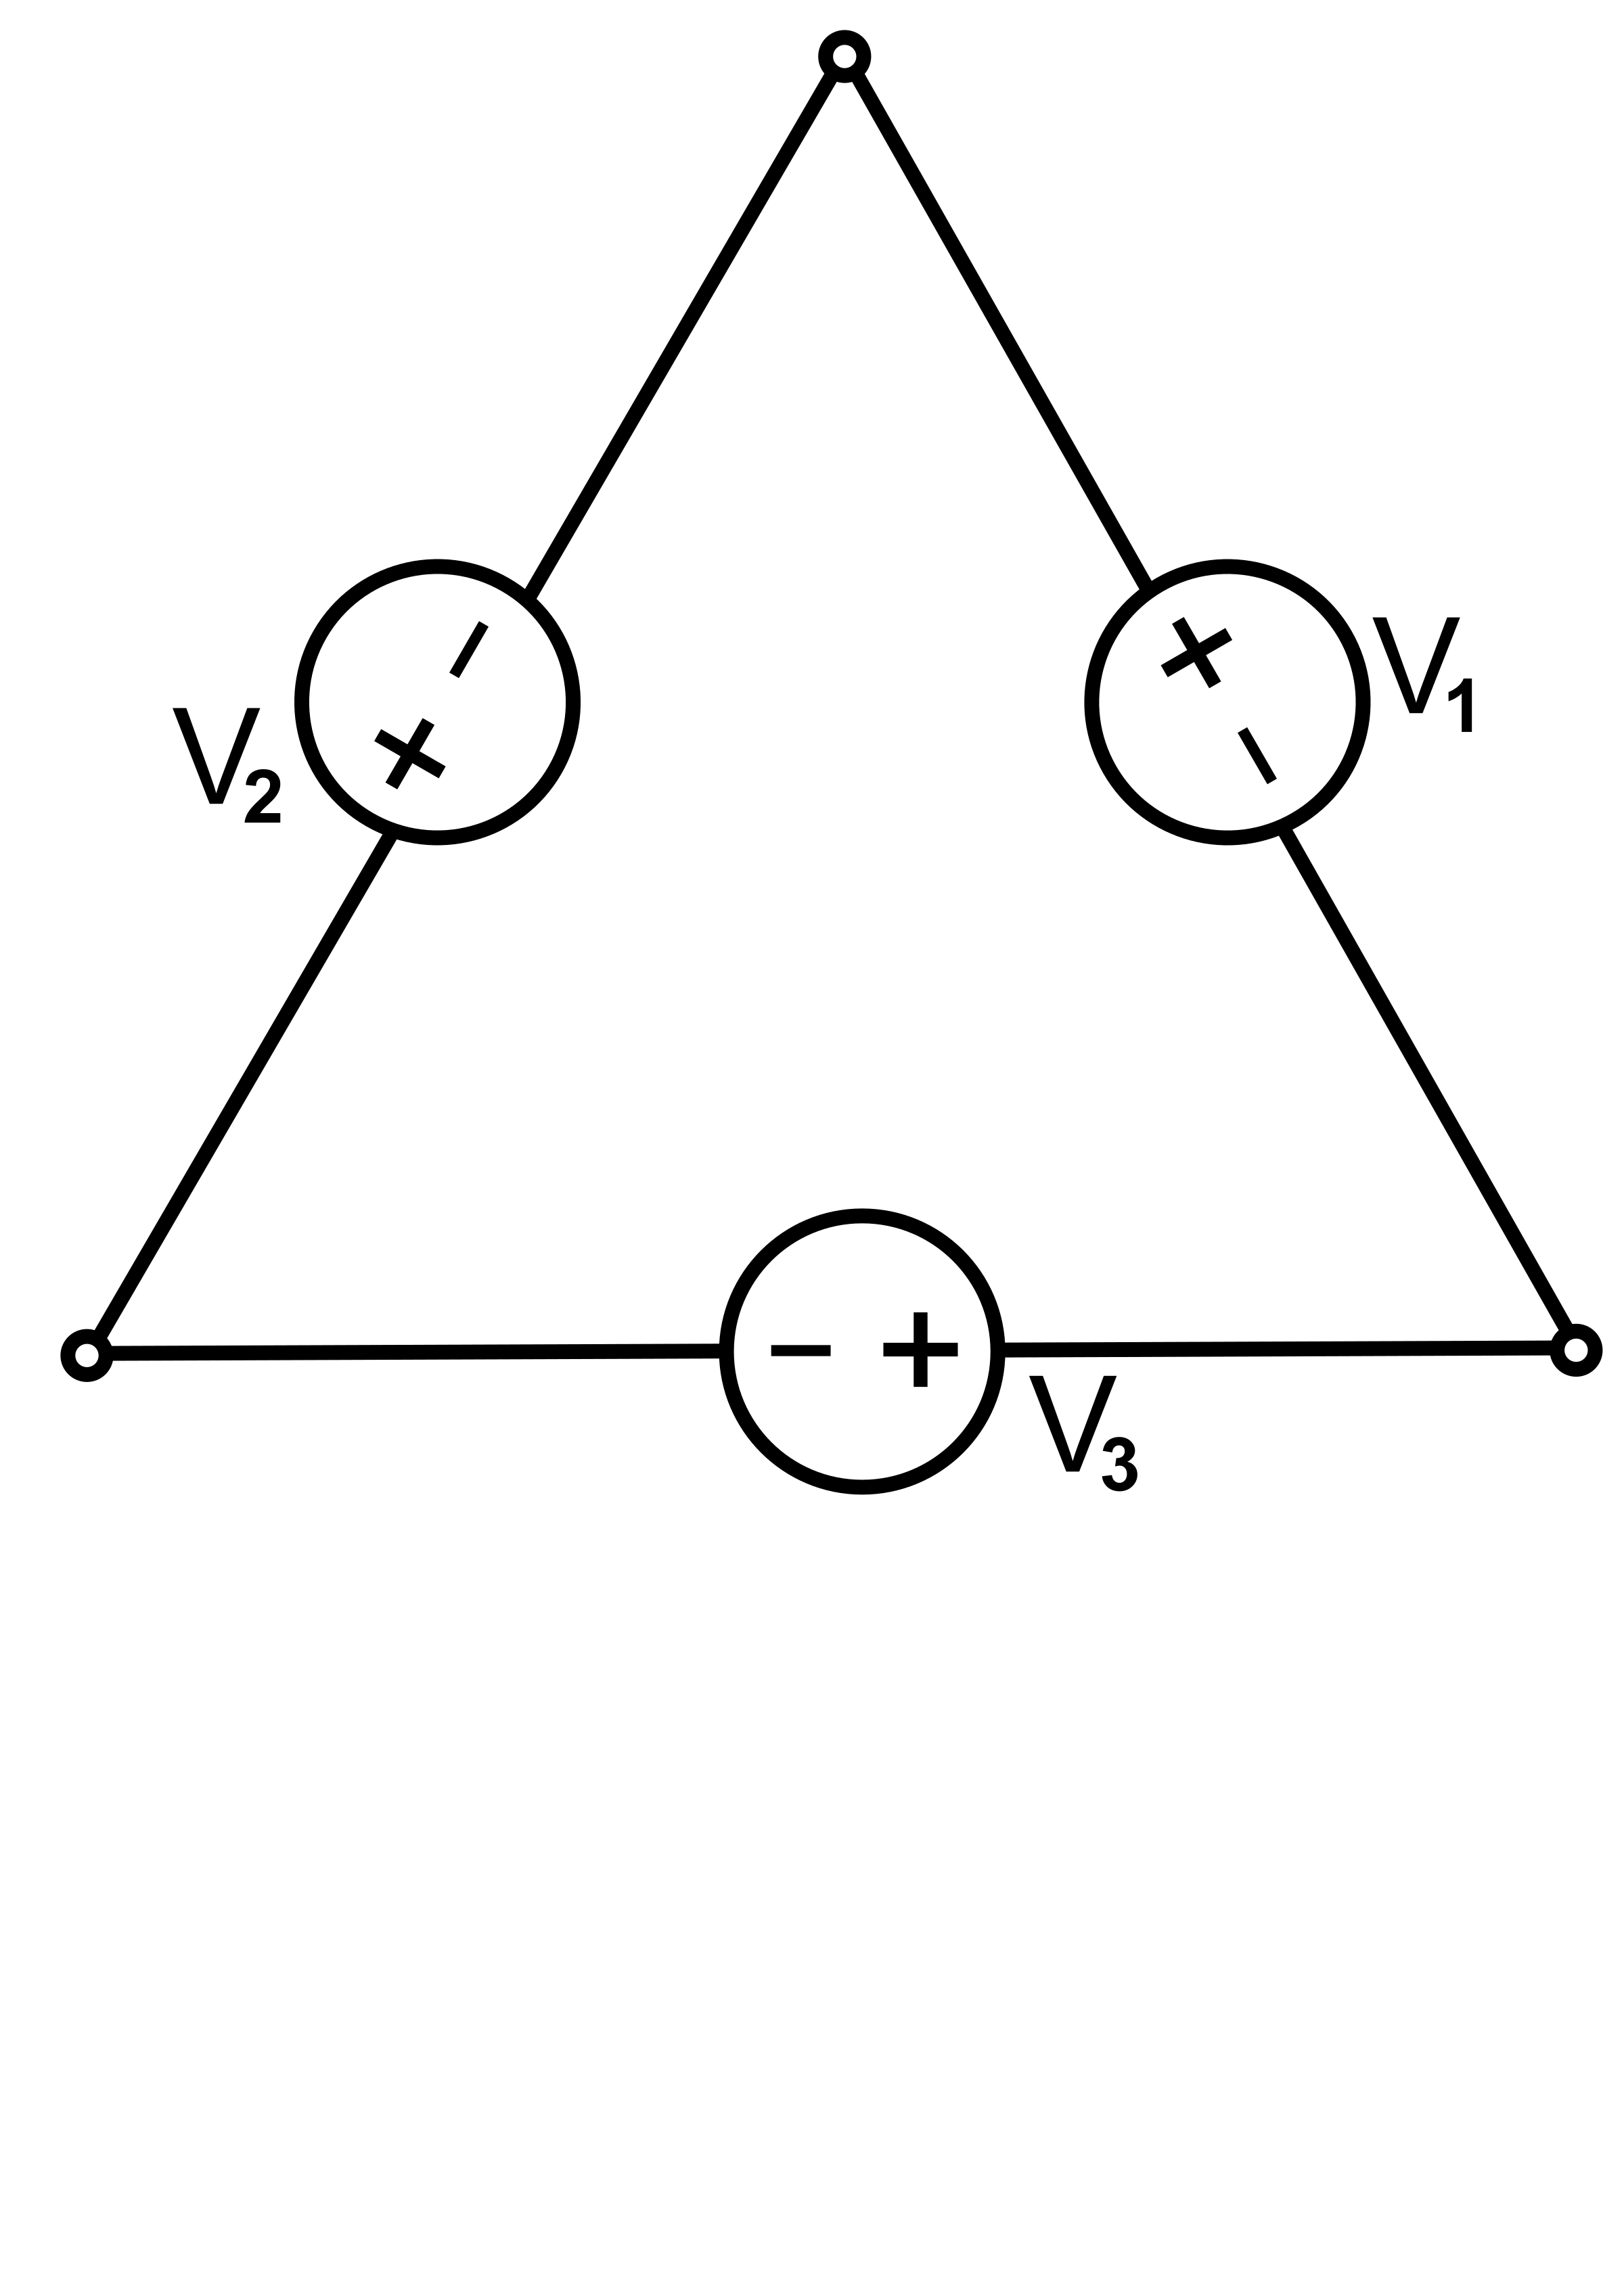 A Three-phase electric power source connected in Delta formation by Eypros